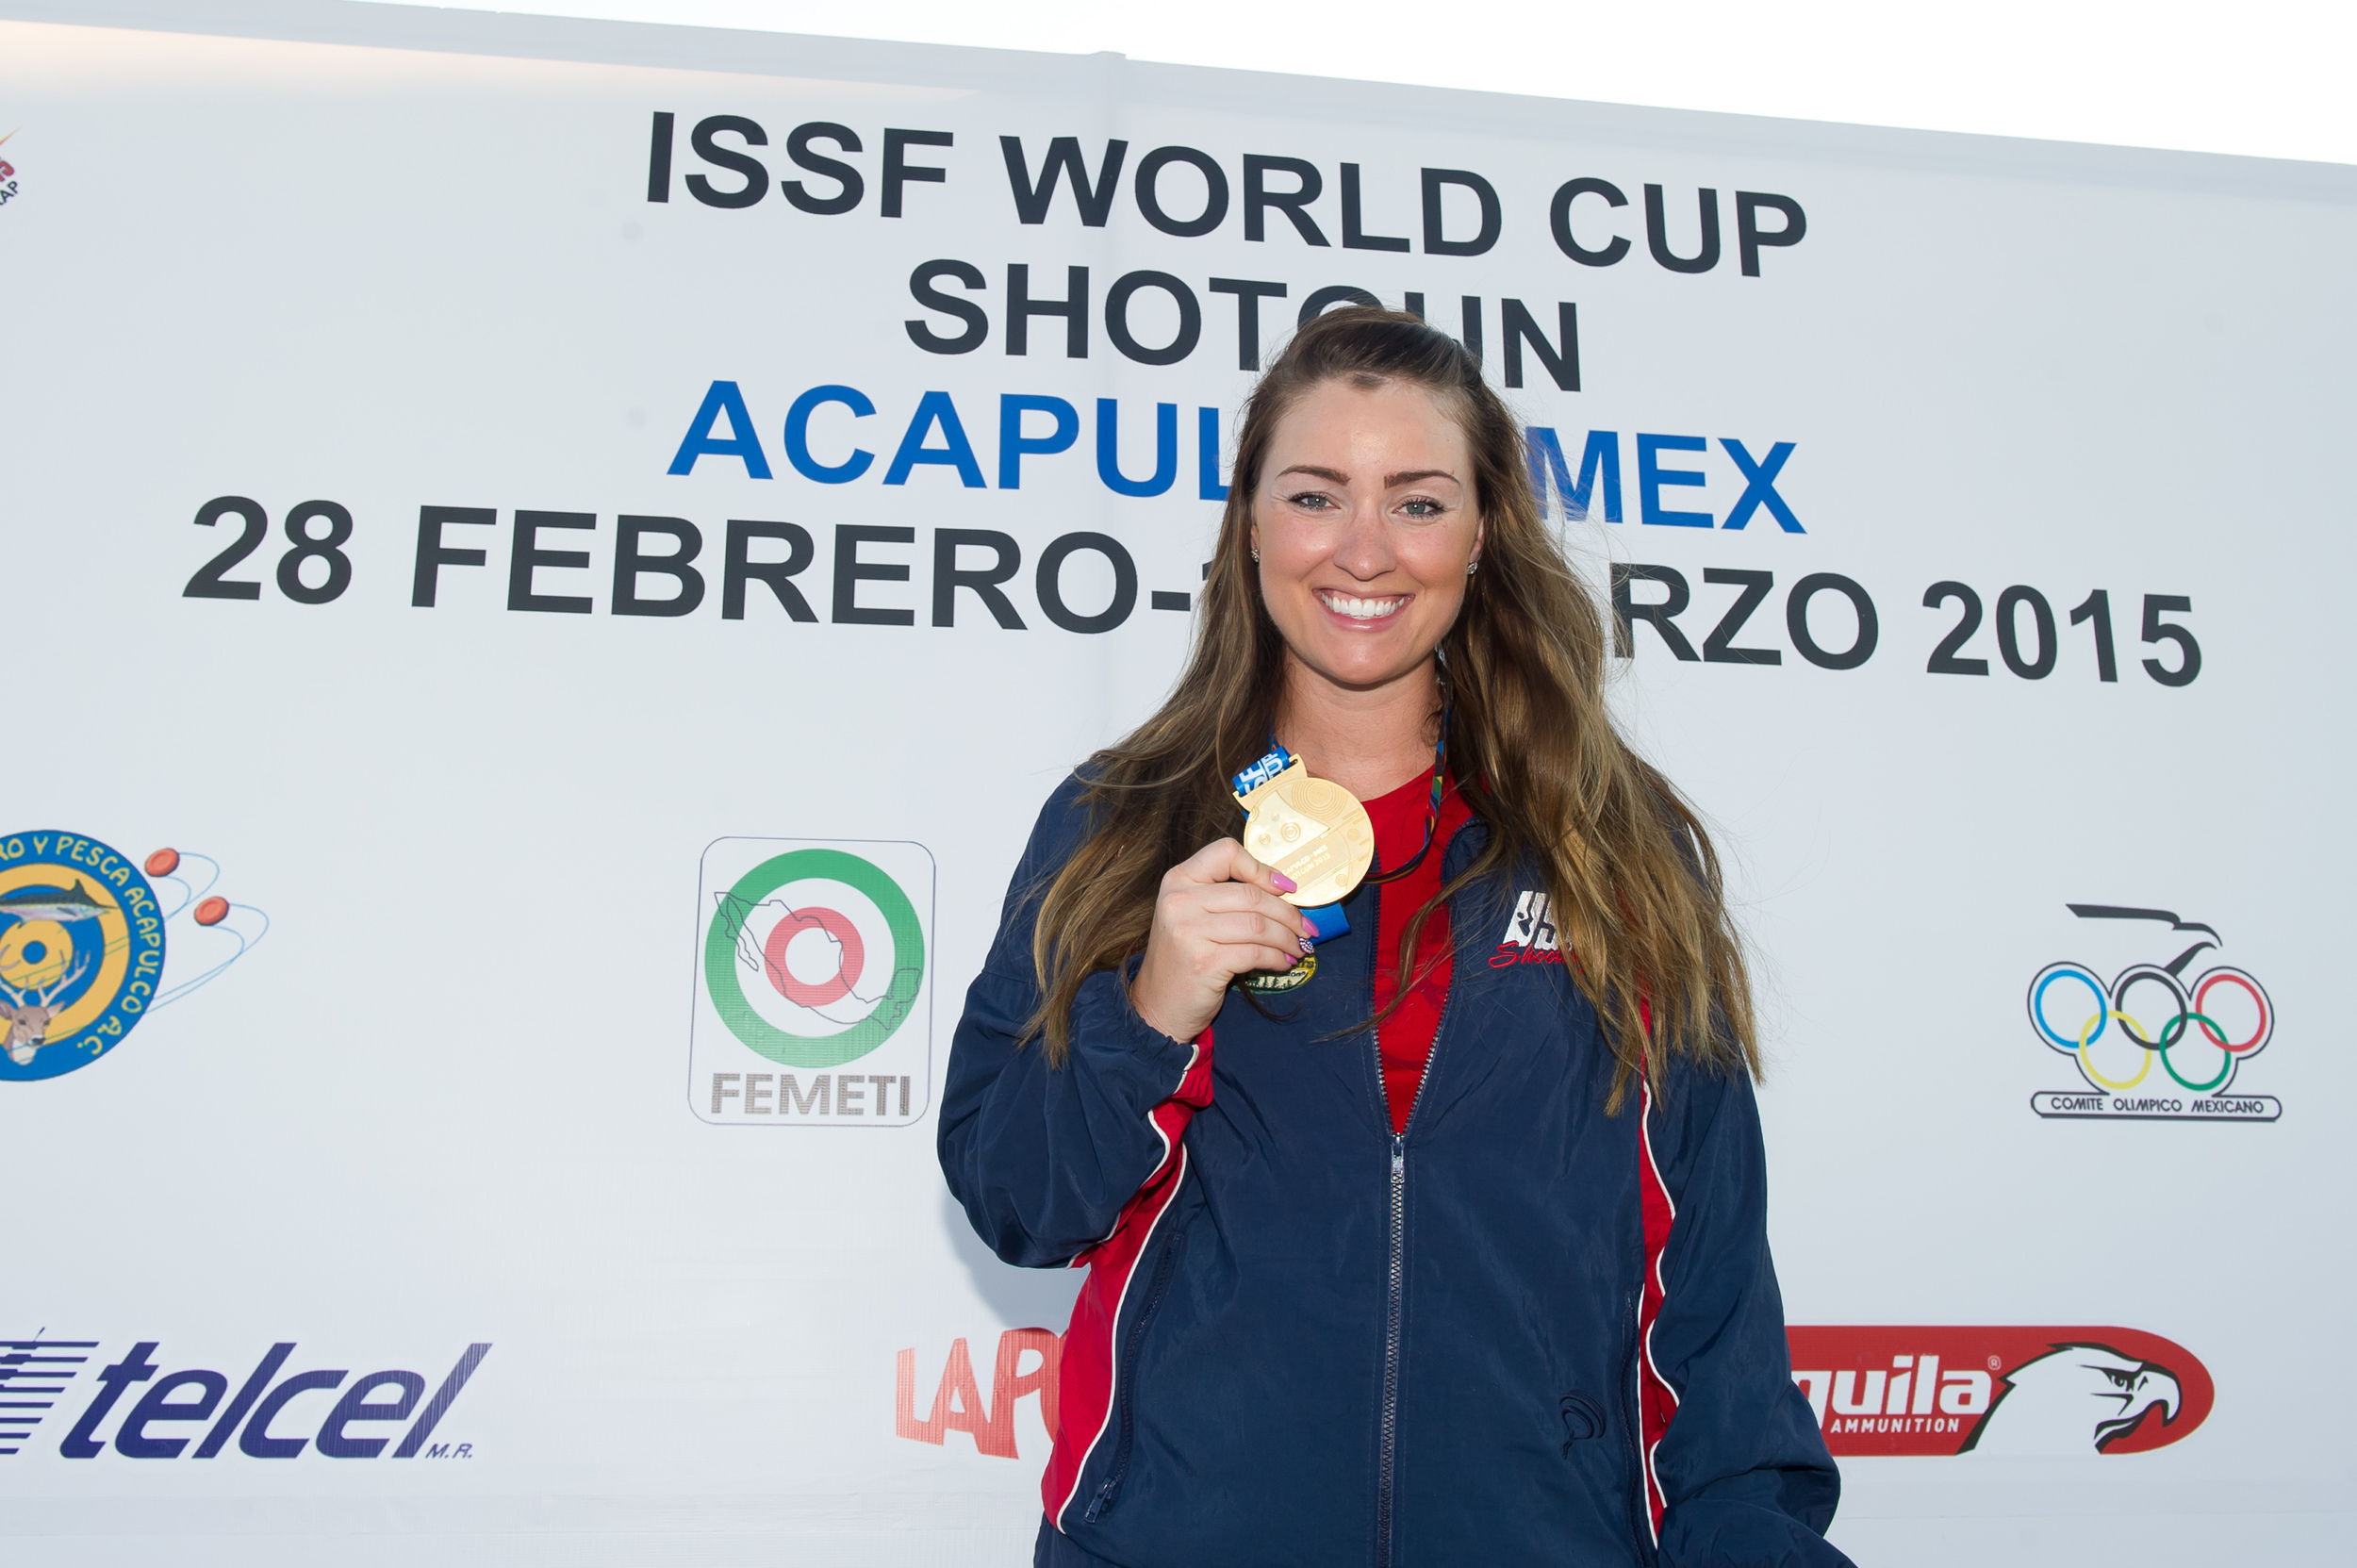 2015 ISSF World Cup in Acapulco